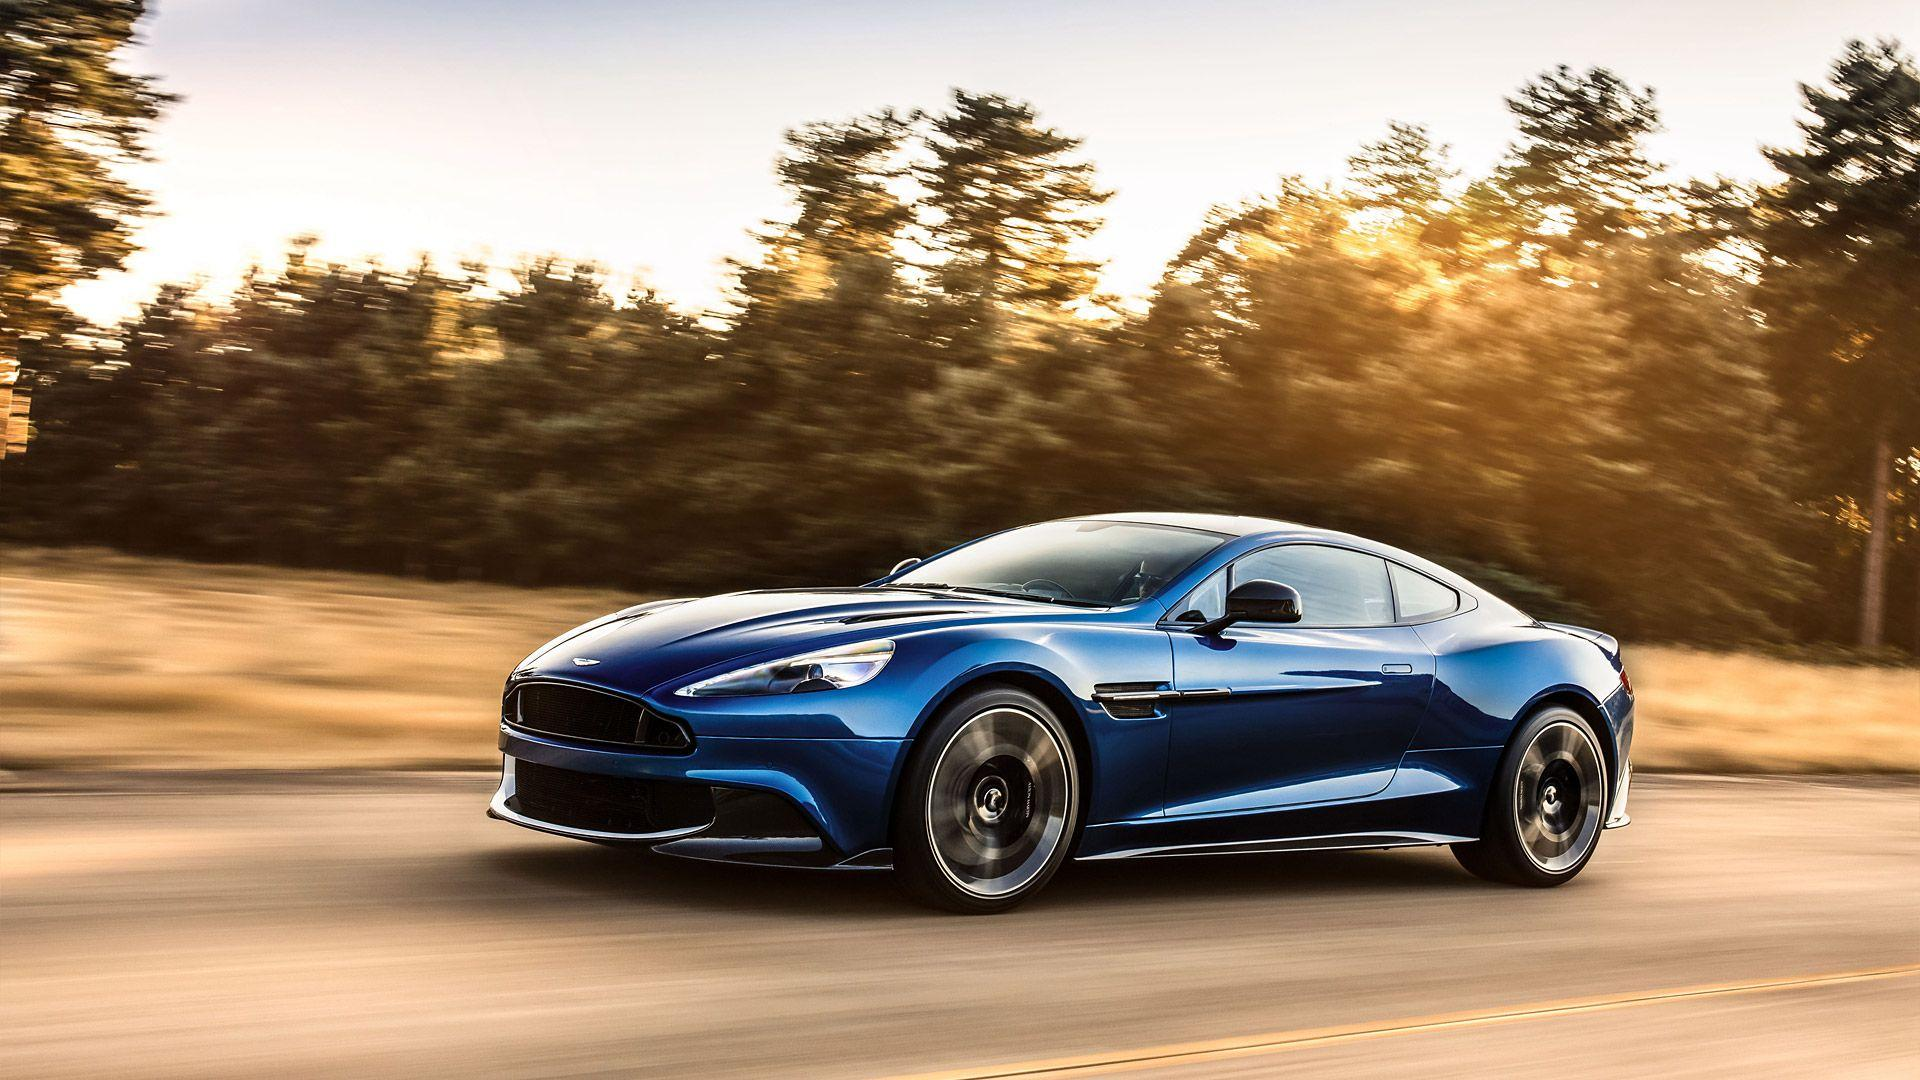 2017 Aston Martin Vanquish S Wallpapers & HD Images - WSupercars